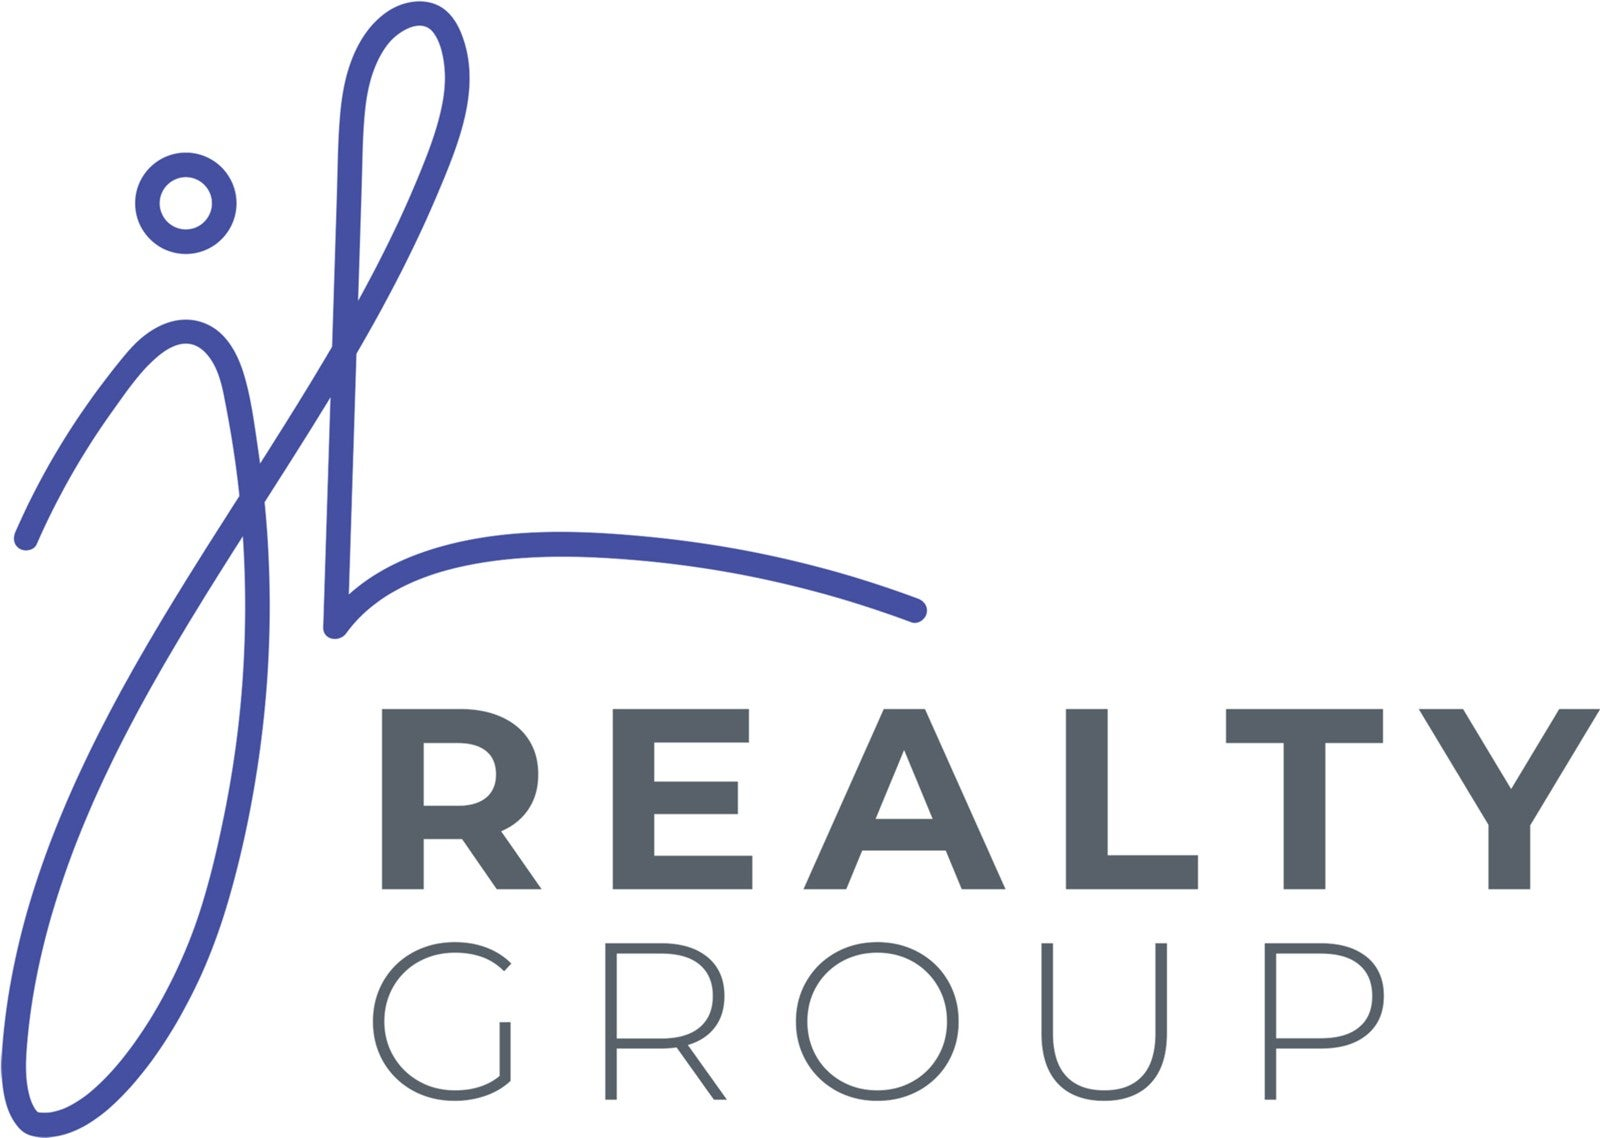 JL Realty Group